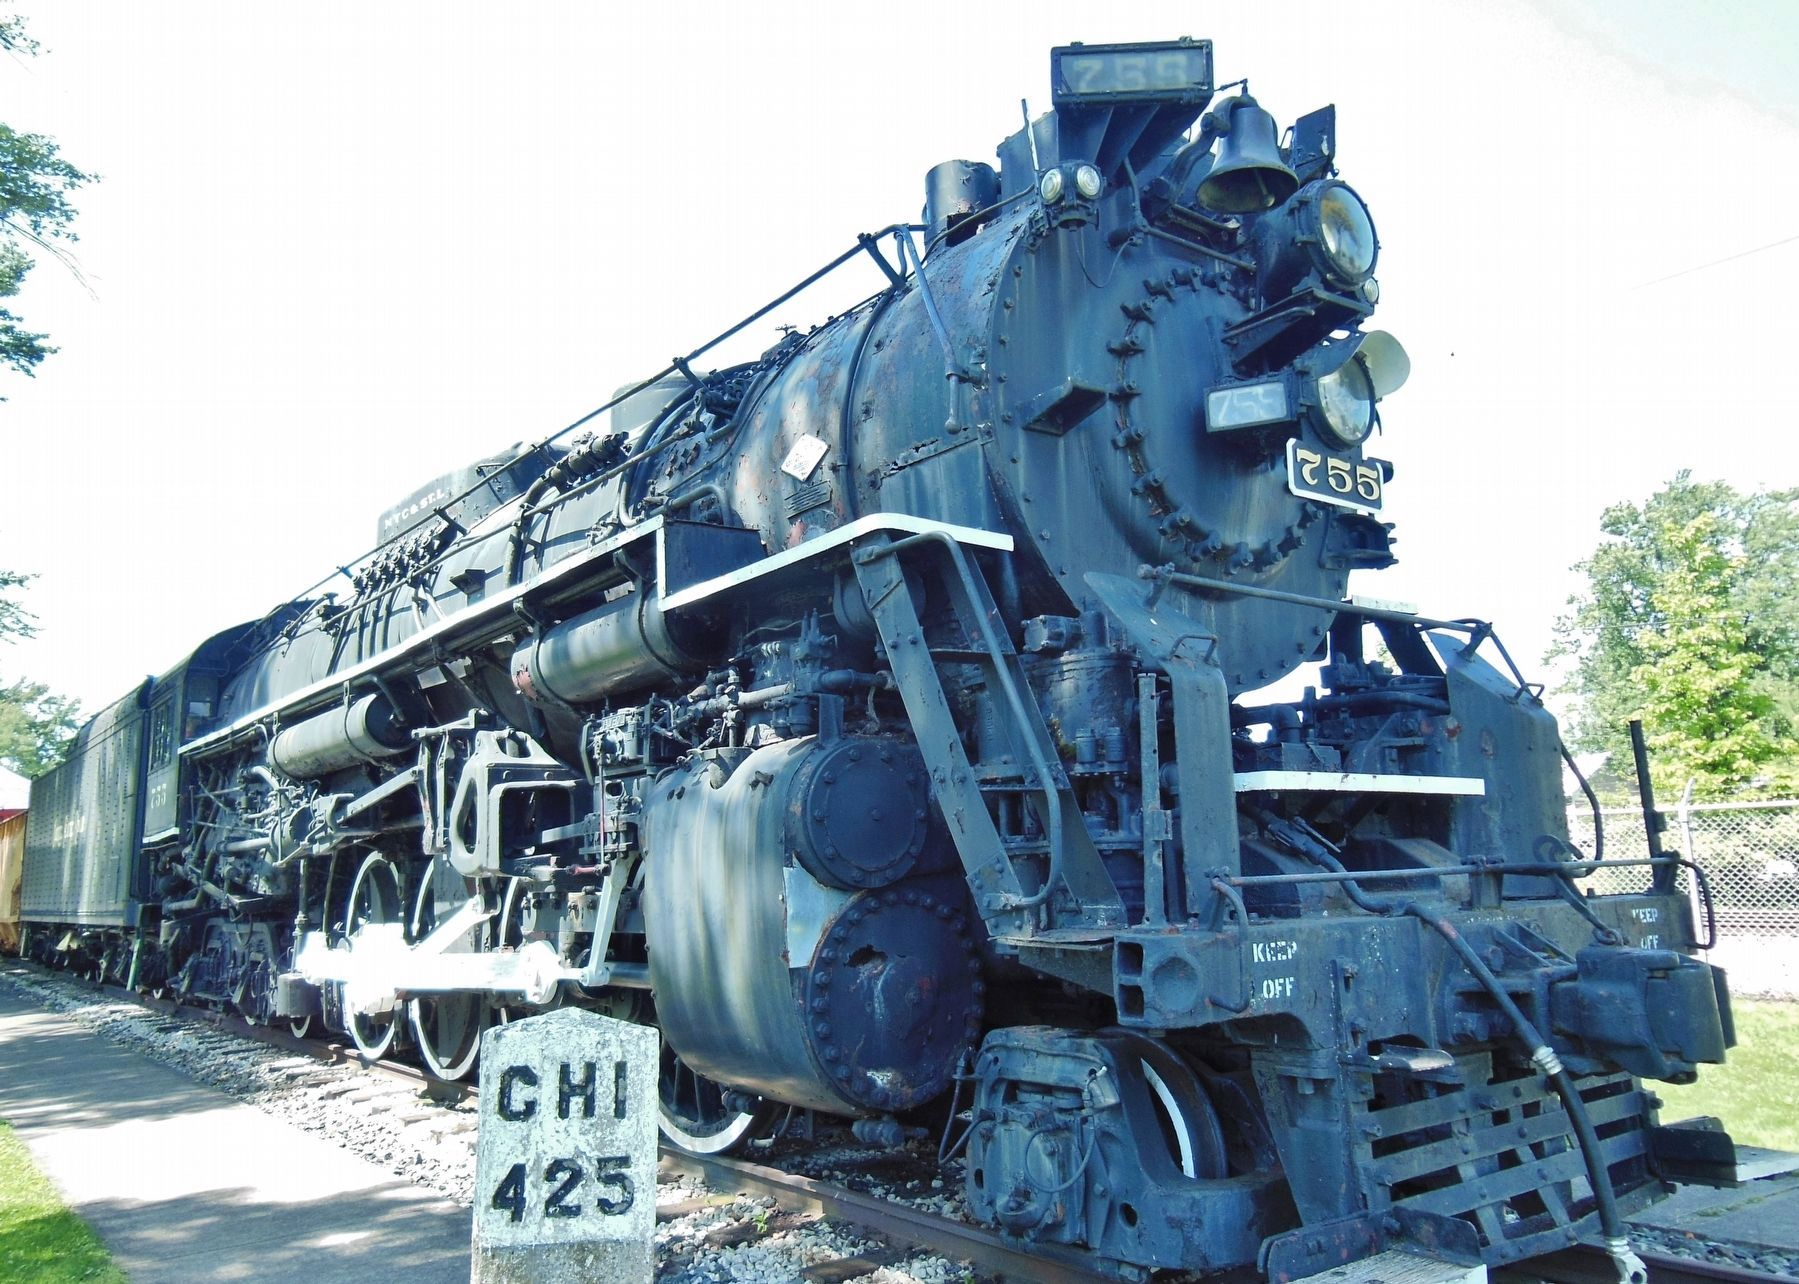 Nickel Plate Road Berkshire Locomotive No. 755 image. Click for full size.